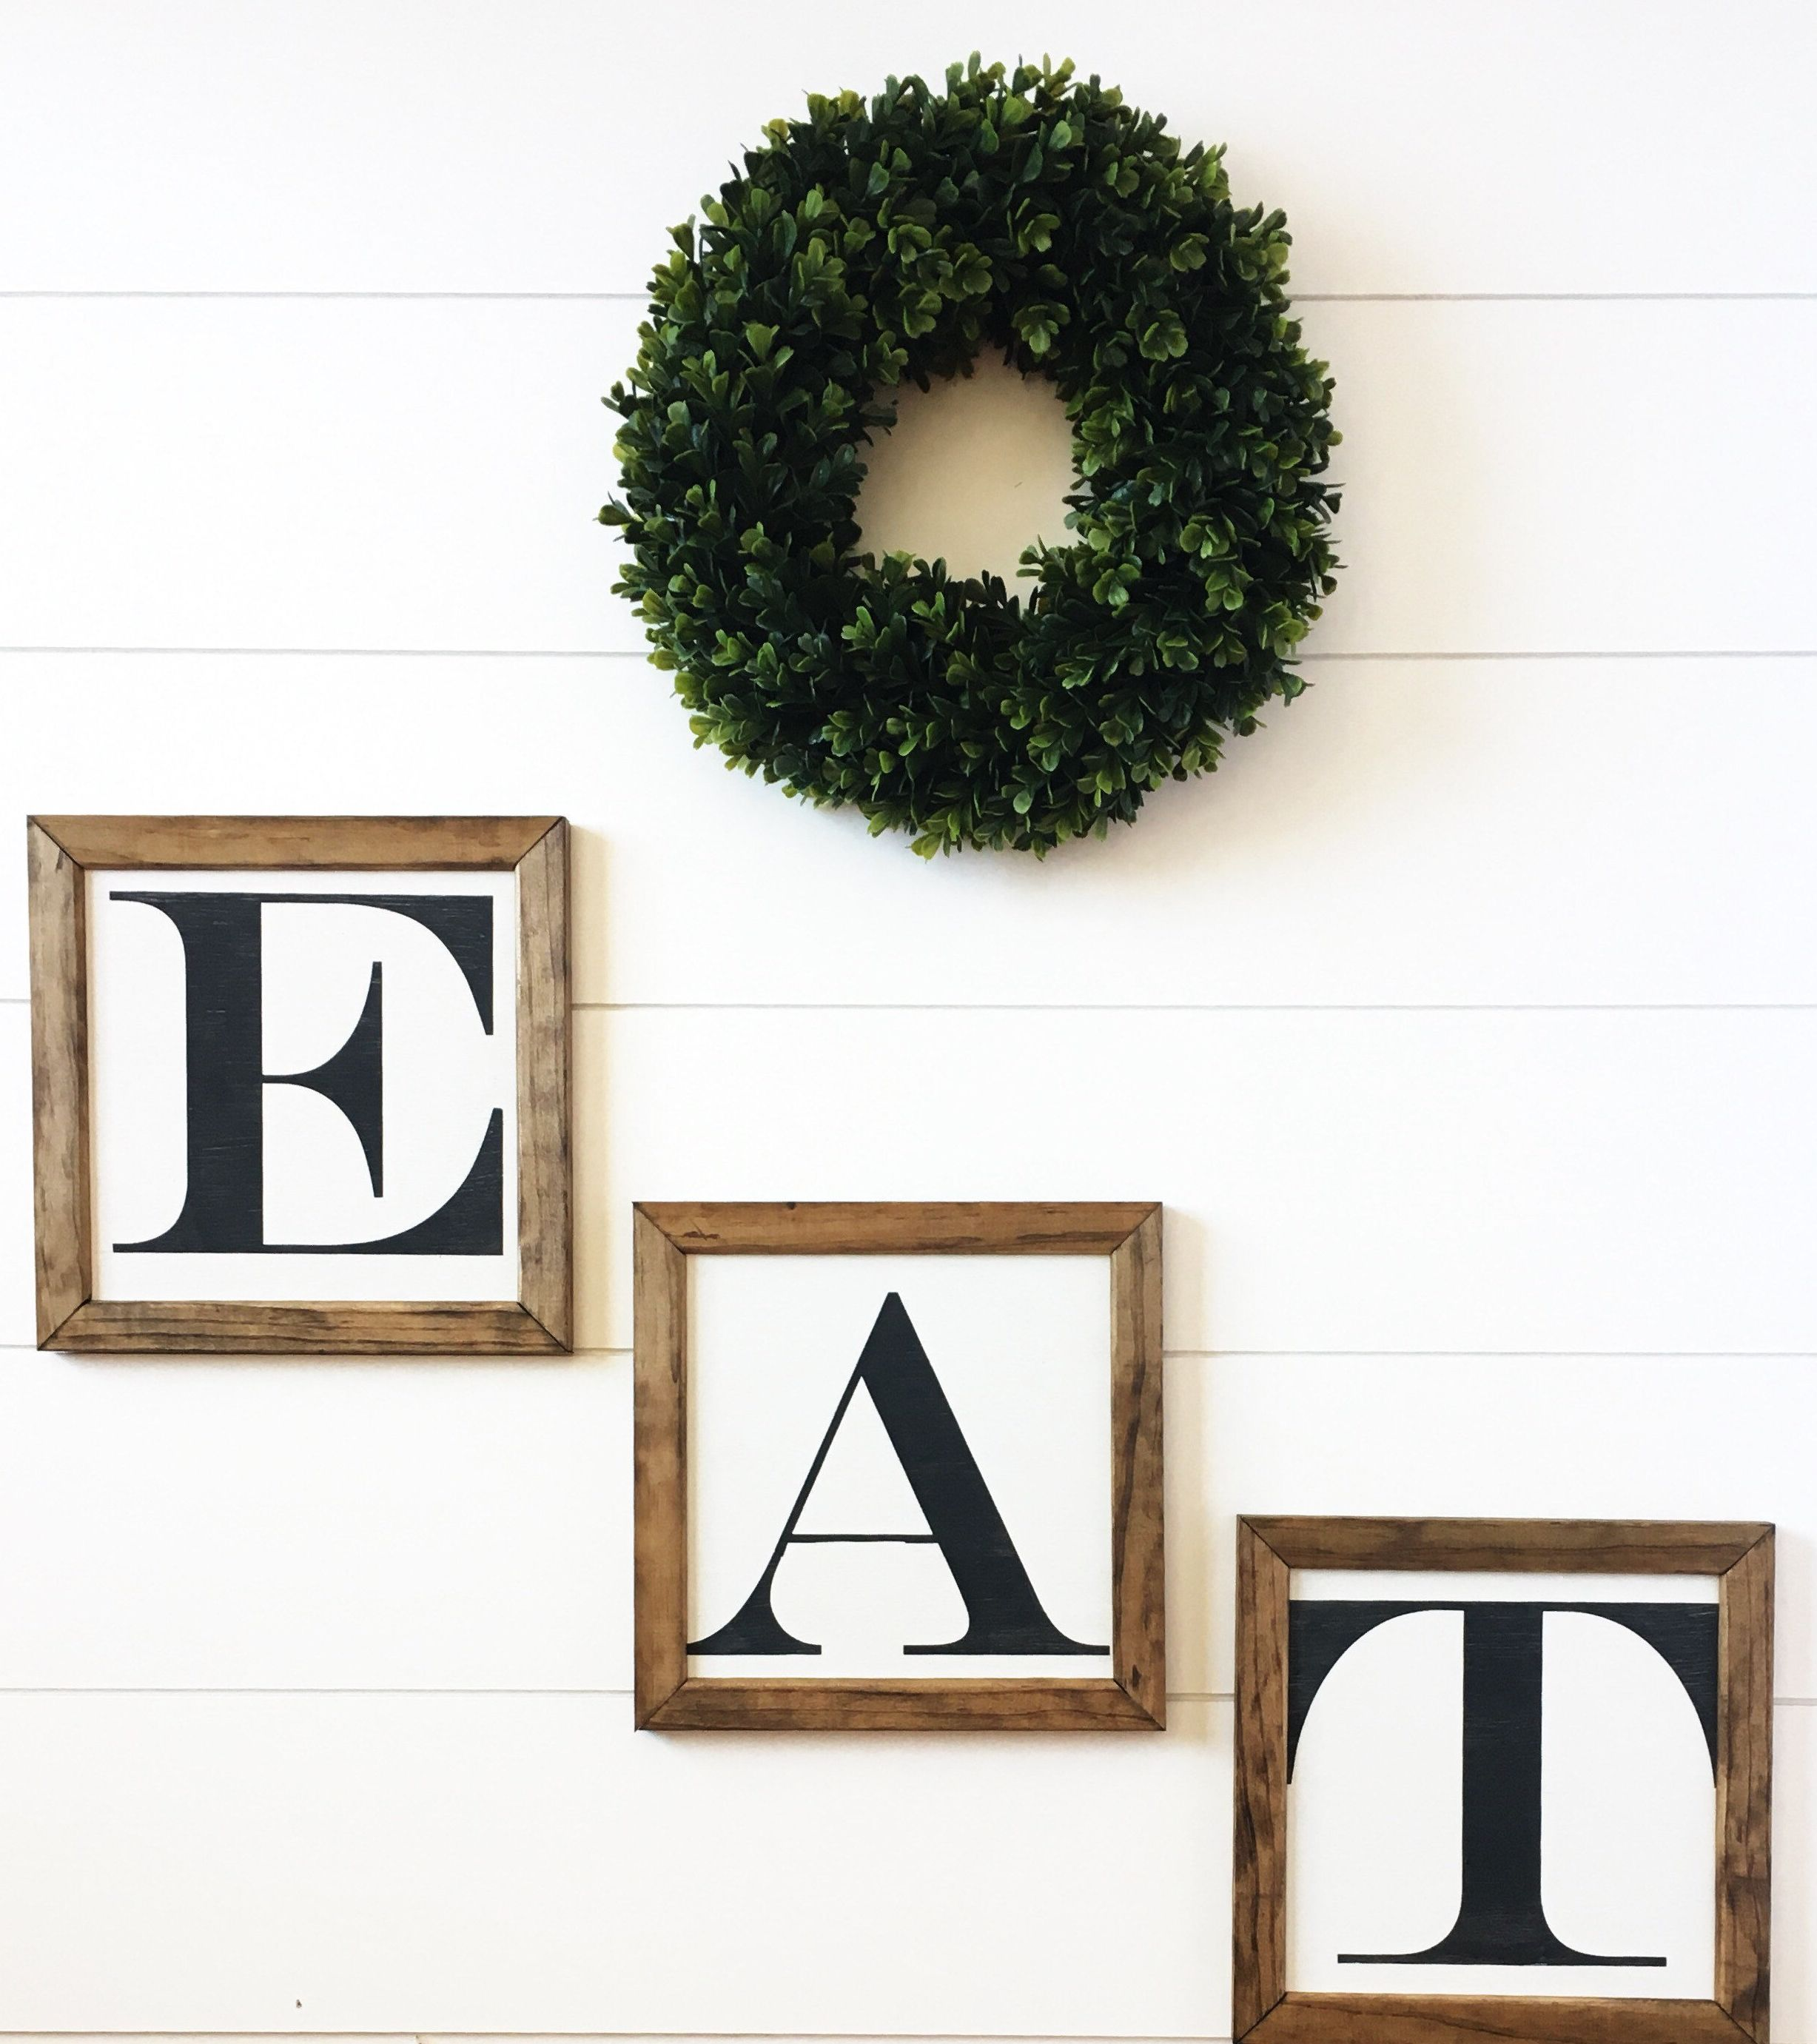 Eat Sign Eat Letters Farmhouse Kitchen Wall Decor Kitchen Wall Art Kitchen Signs Rustic Home Decor Rustic Home Decor In 2019 Rustic Kitchen Wall Decor